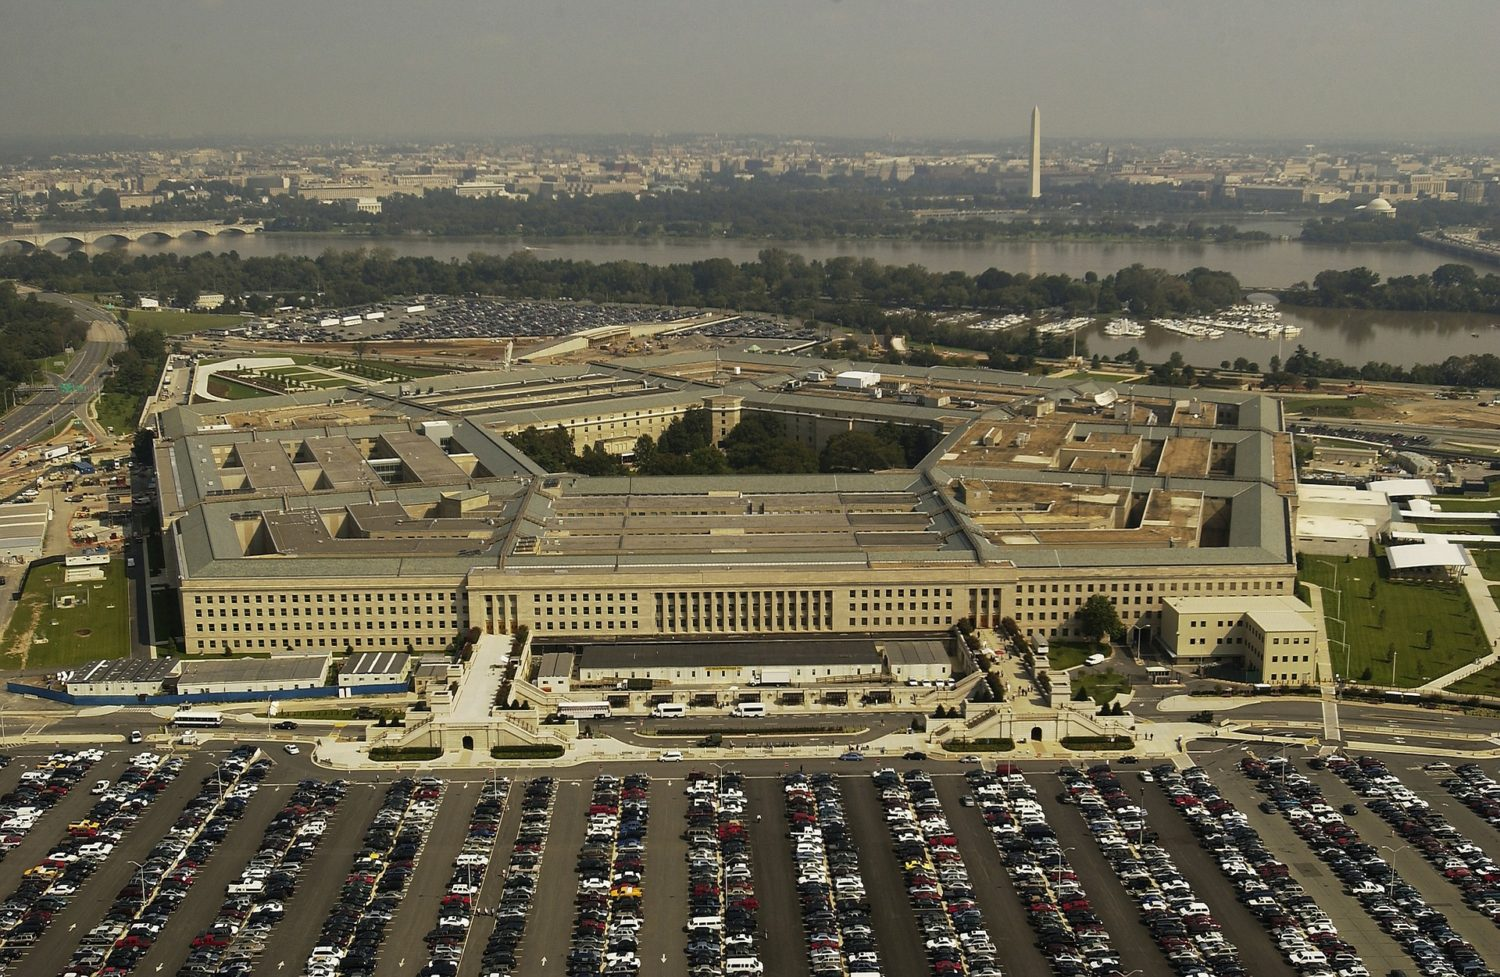 The Pentagon, Washington, D.C.